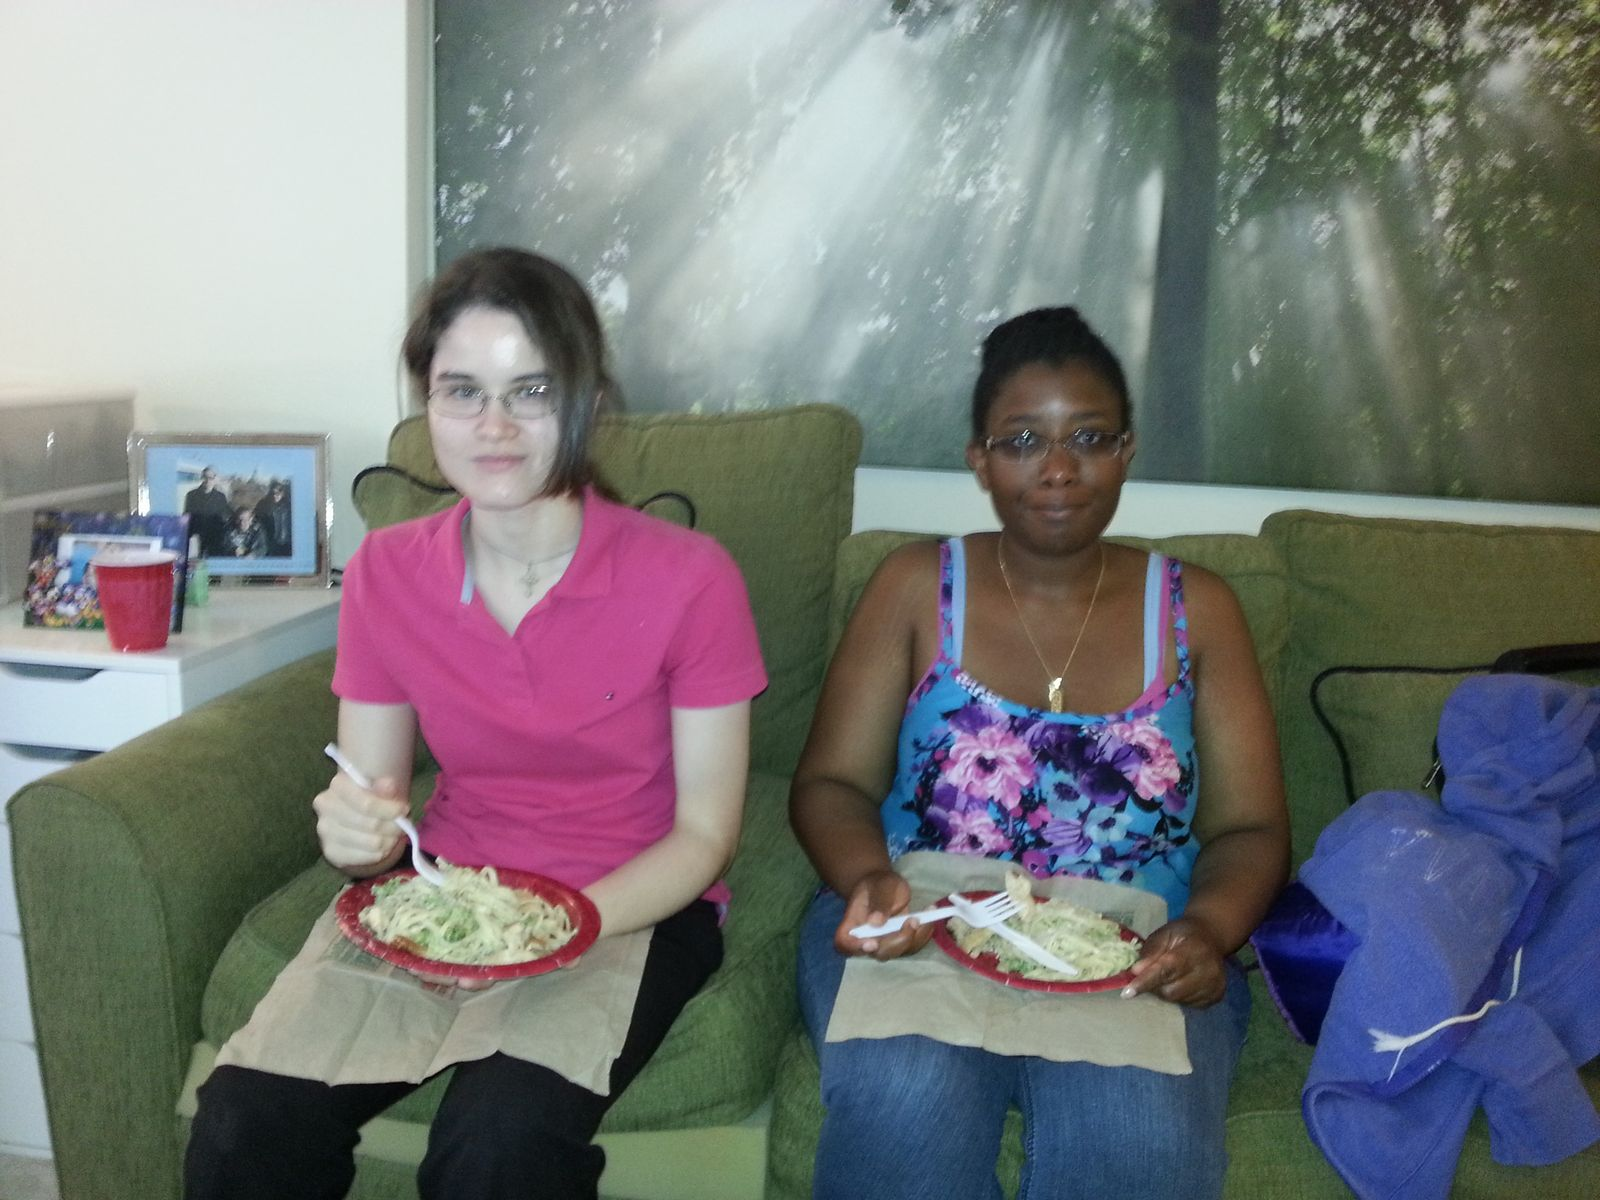 Participants eating their pasta